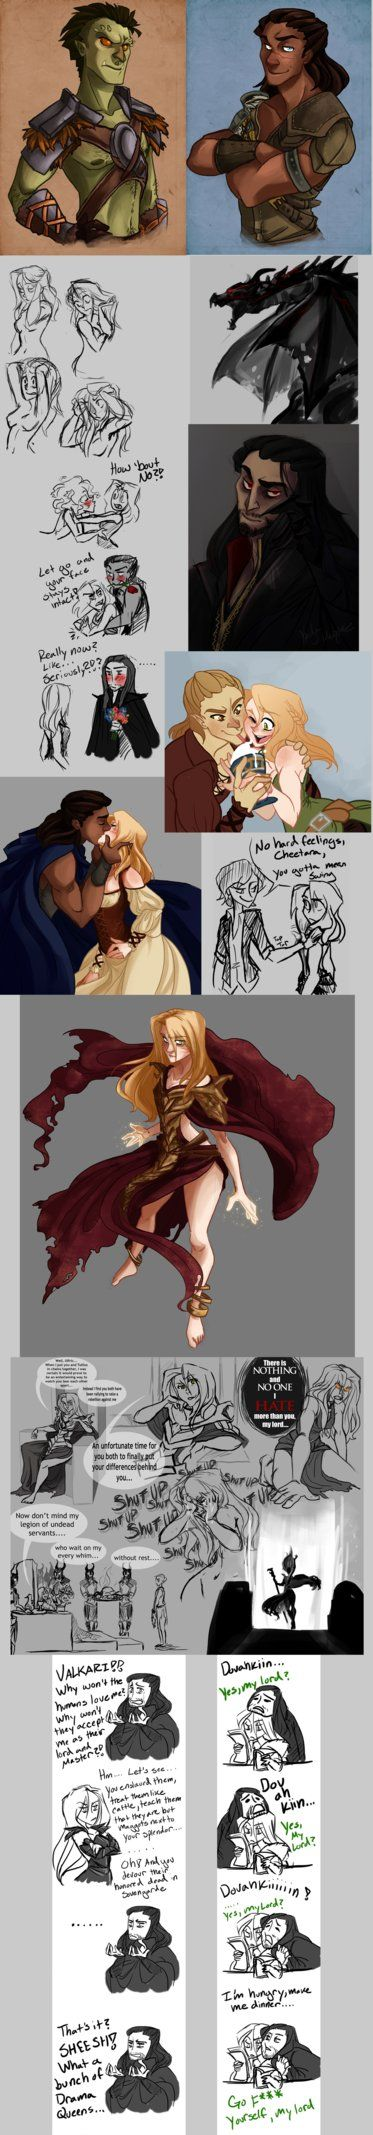 Alright, its been a while but have some Skyrim art from my tumblr:the-orator.tumblr.com/ At the top are my characters Valkari, Demir, Falicia and Makoor most of the rest is costumes and clothing So...